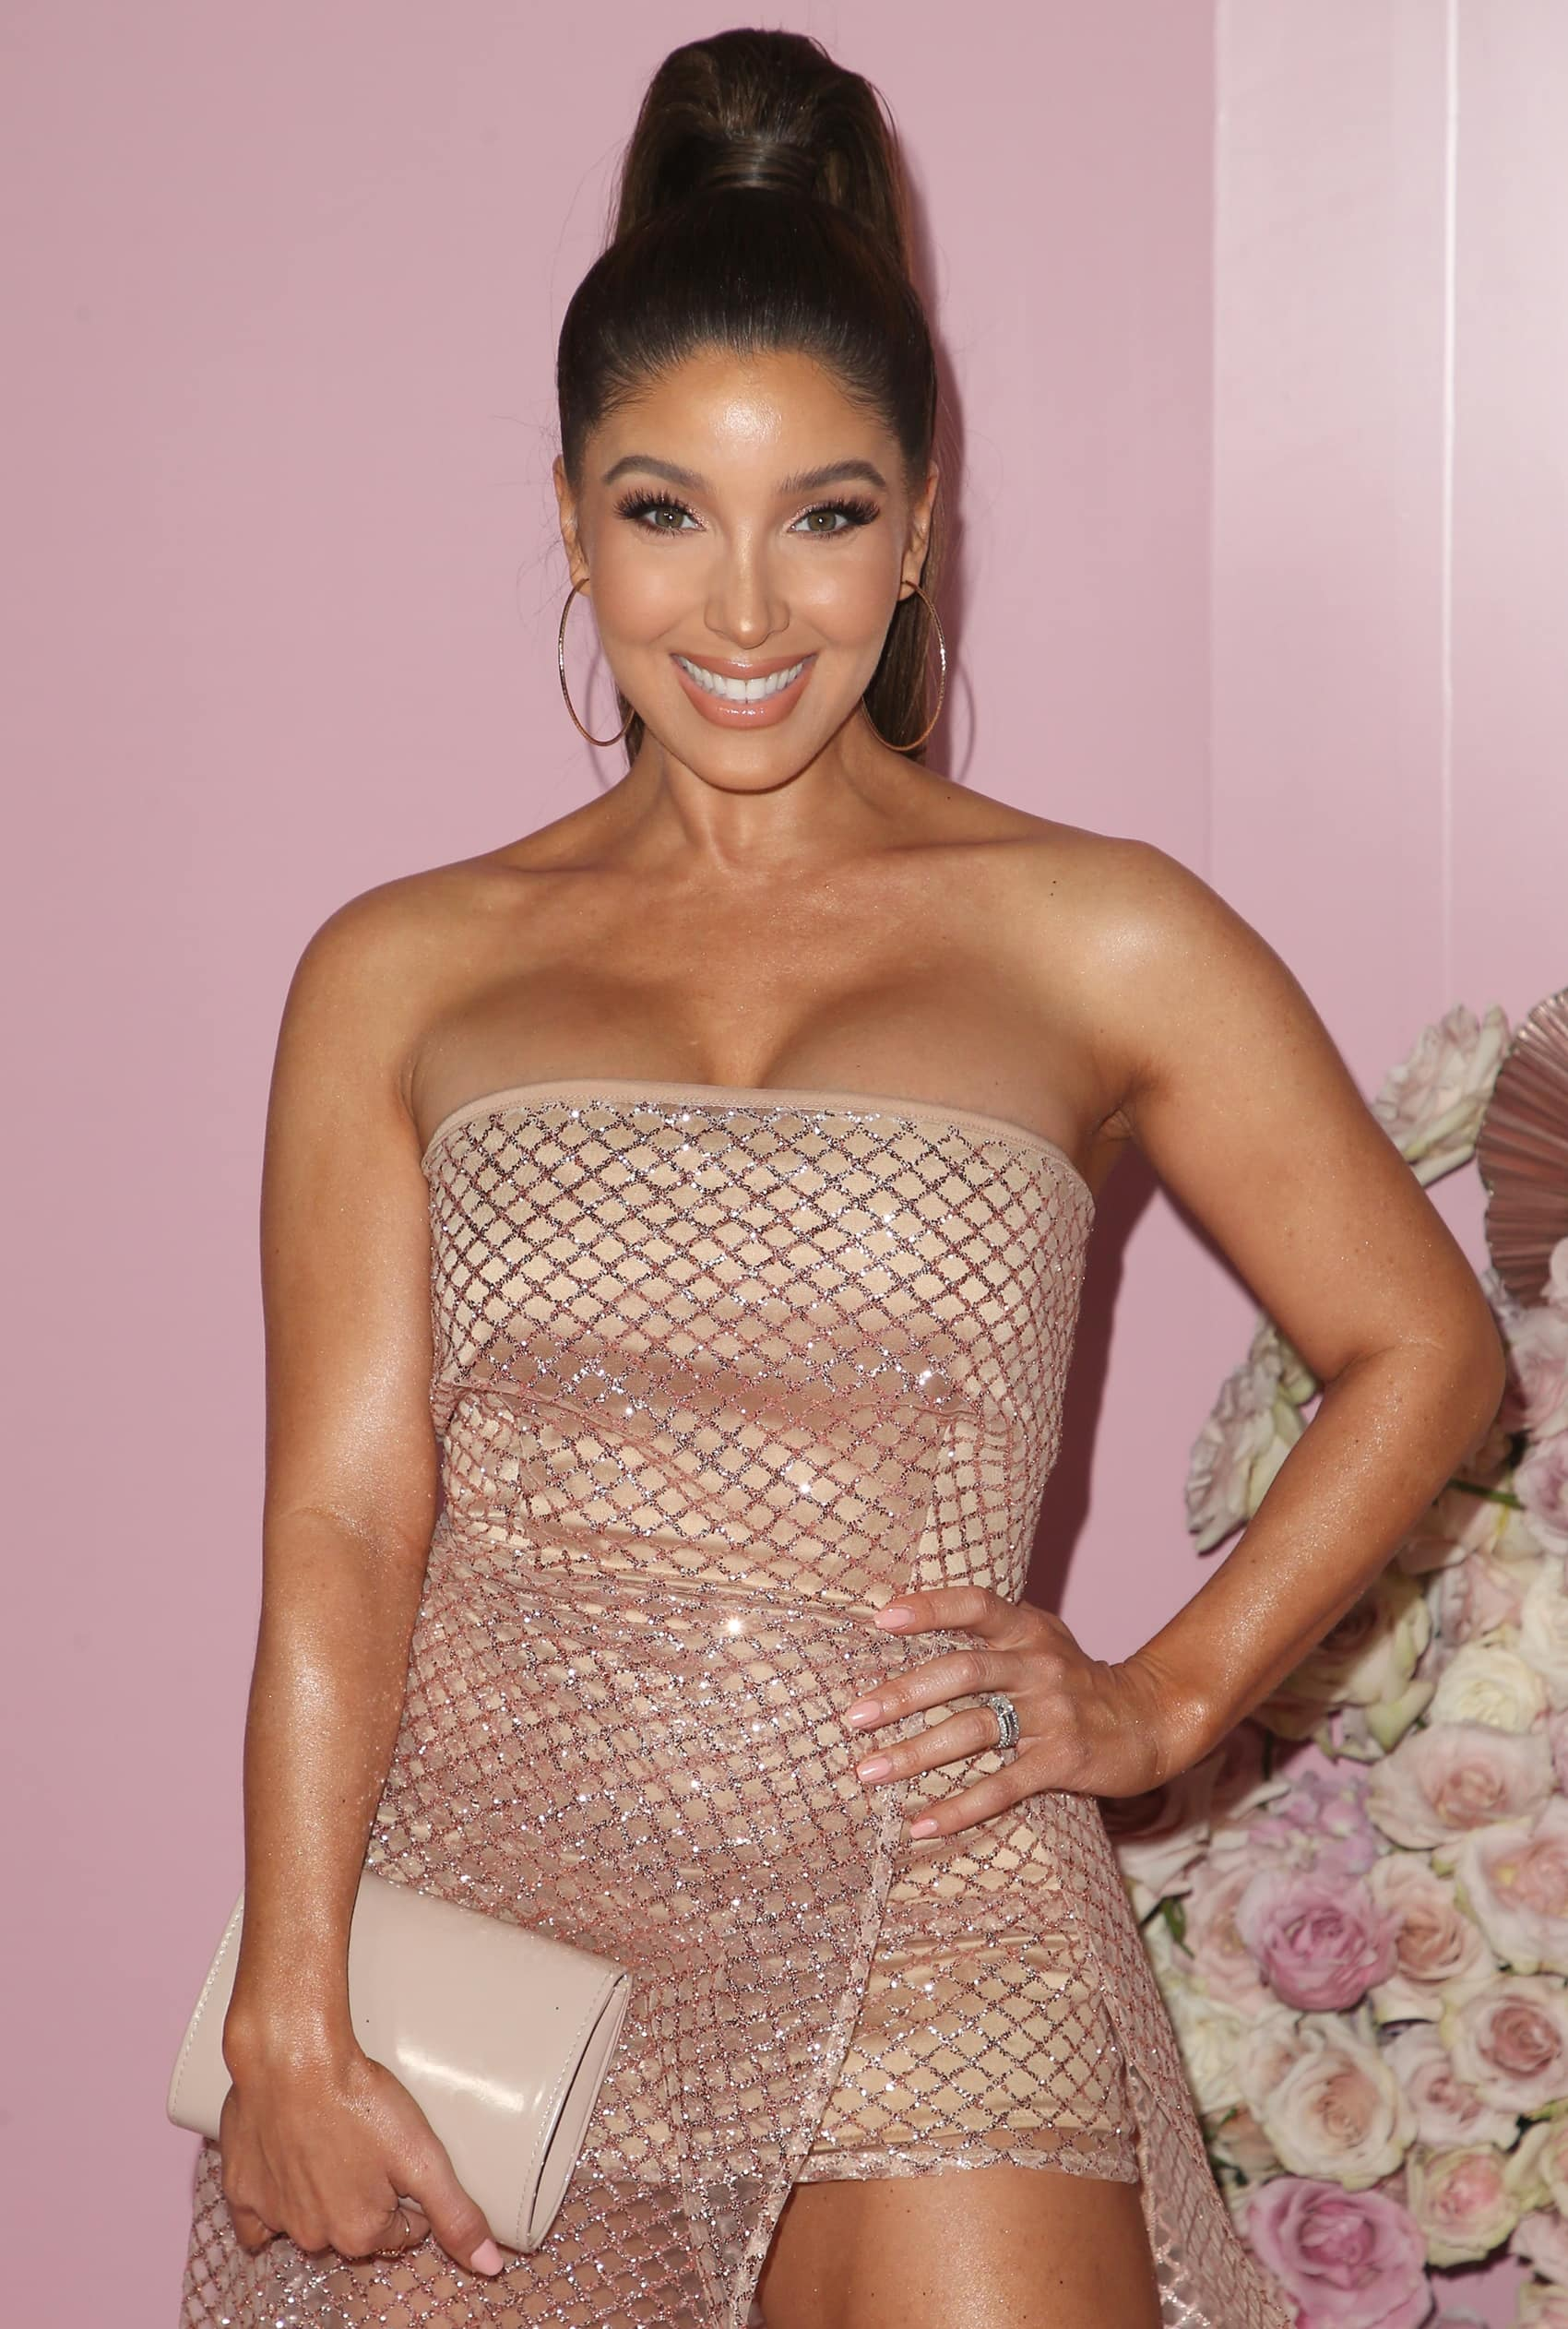 Melissa Molinaro attends the official launch of the Patrick Ta Beauty Major Glow collection